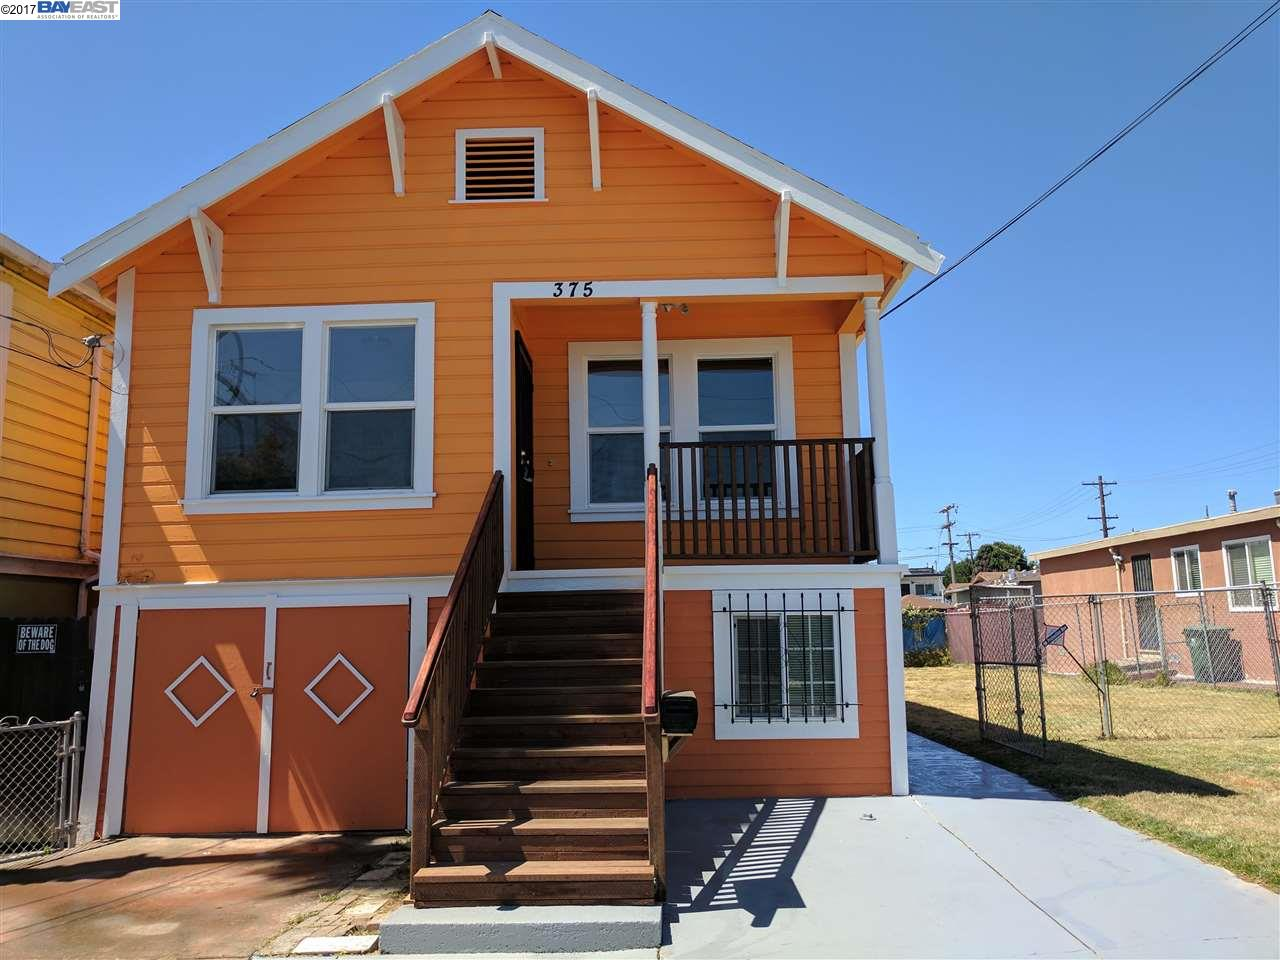 375 BECK ST, RICHMOND, CA 94804